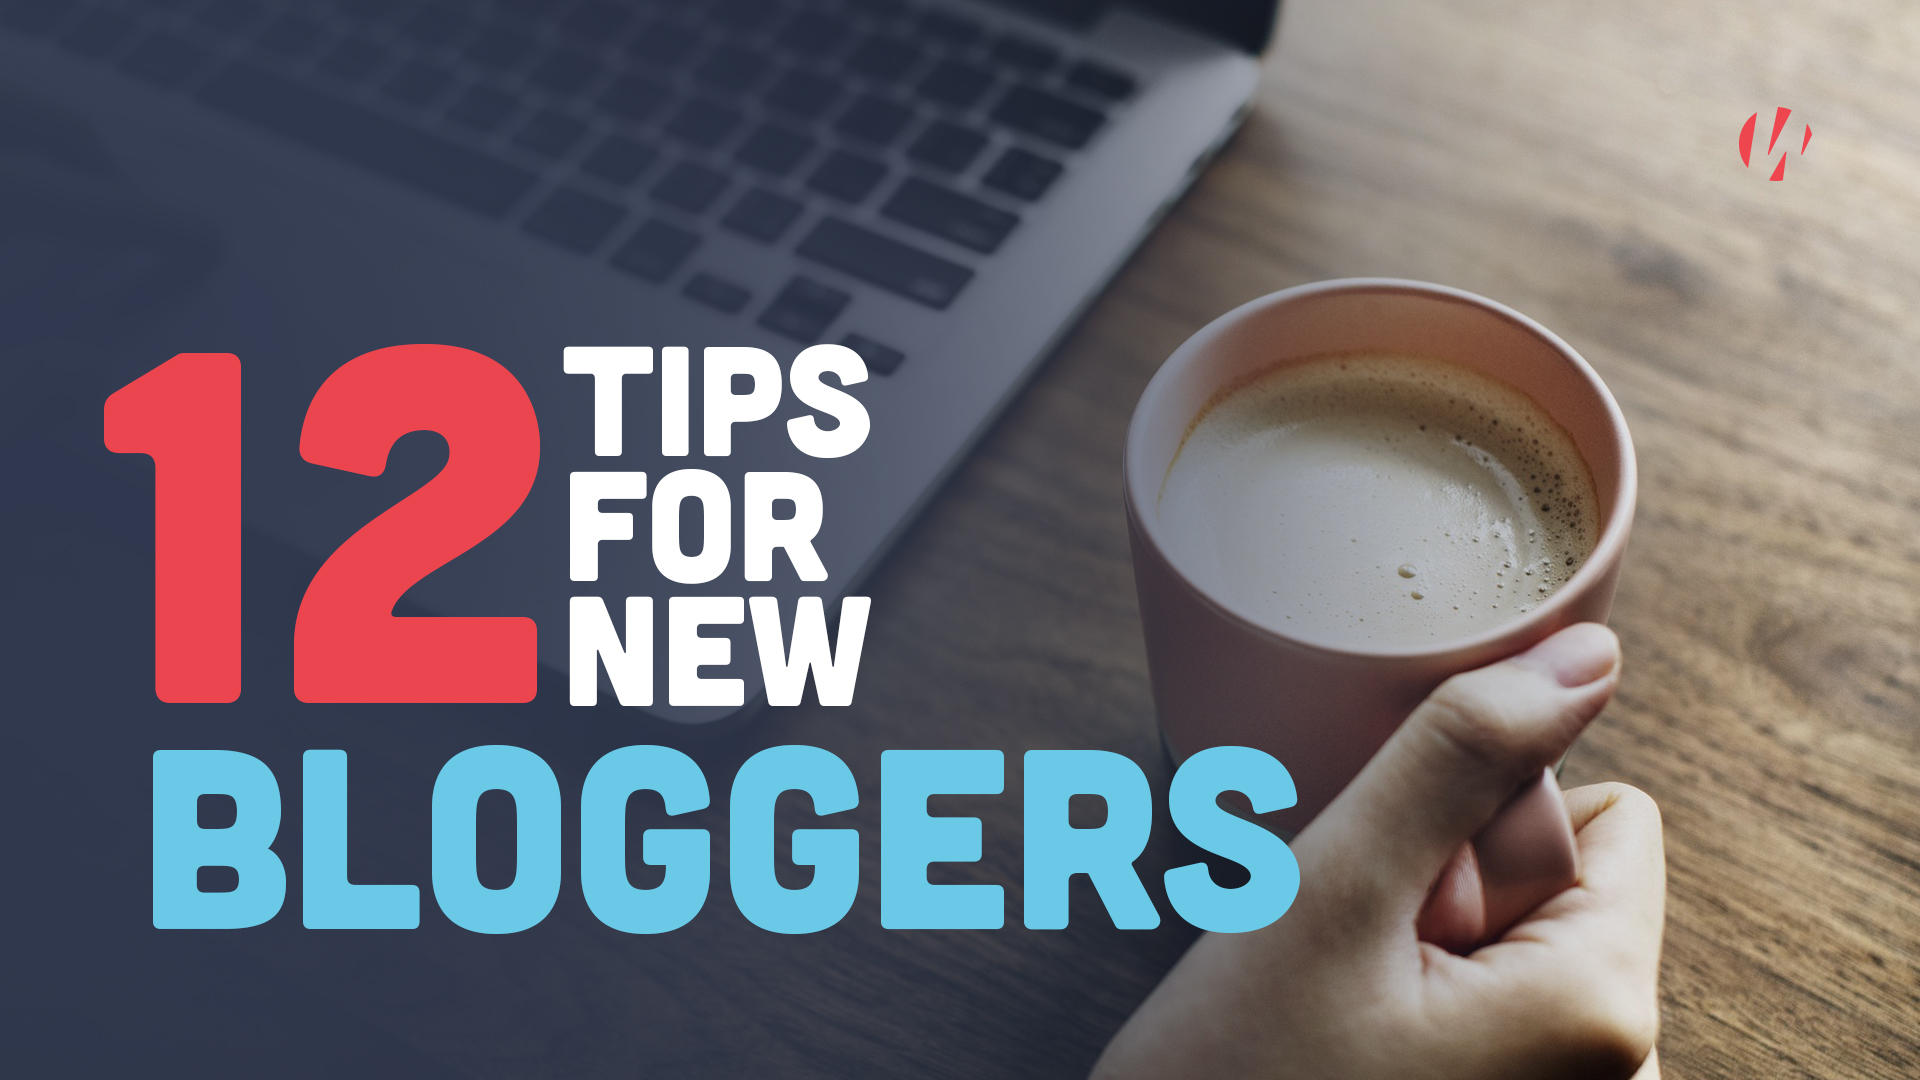 12 Tips for New Bloggers